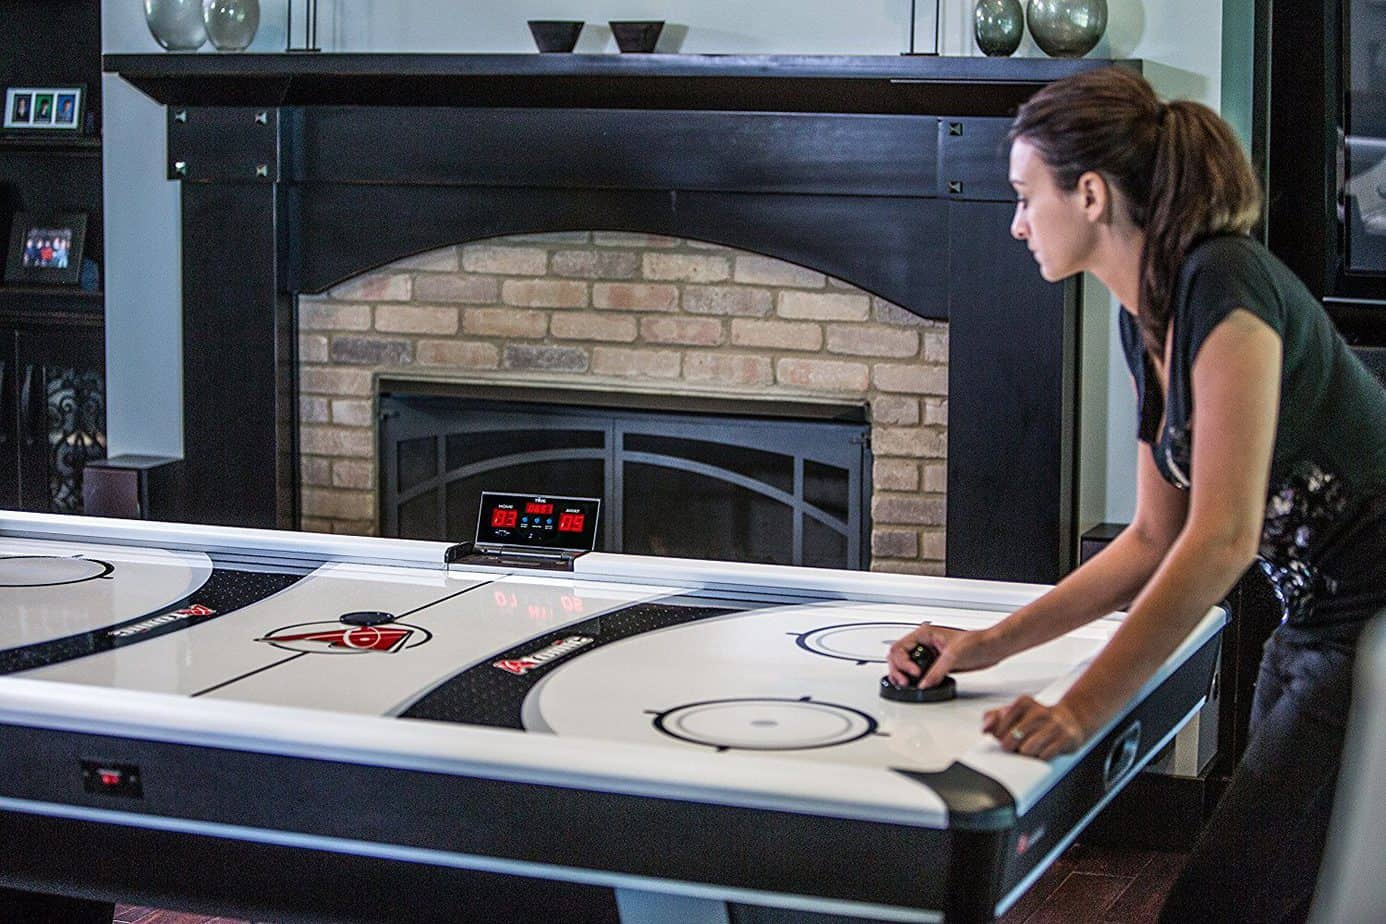 Woman Playing On Air Hockey table